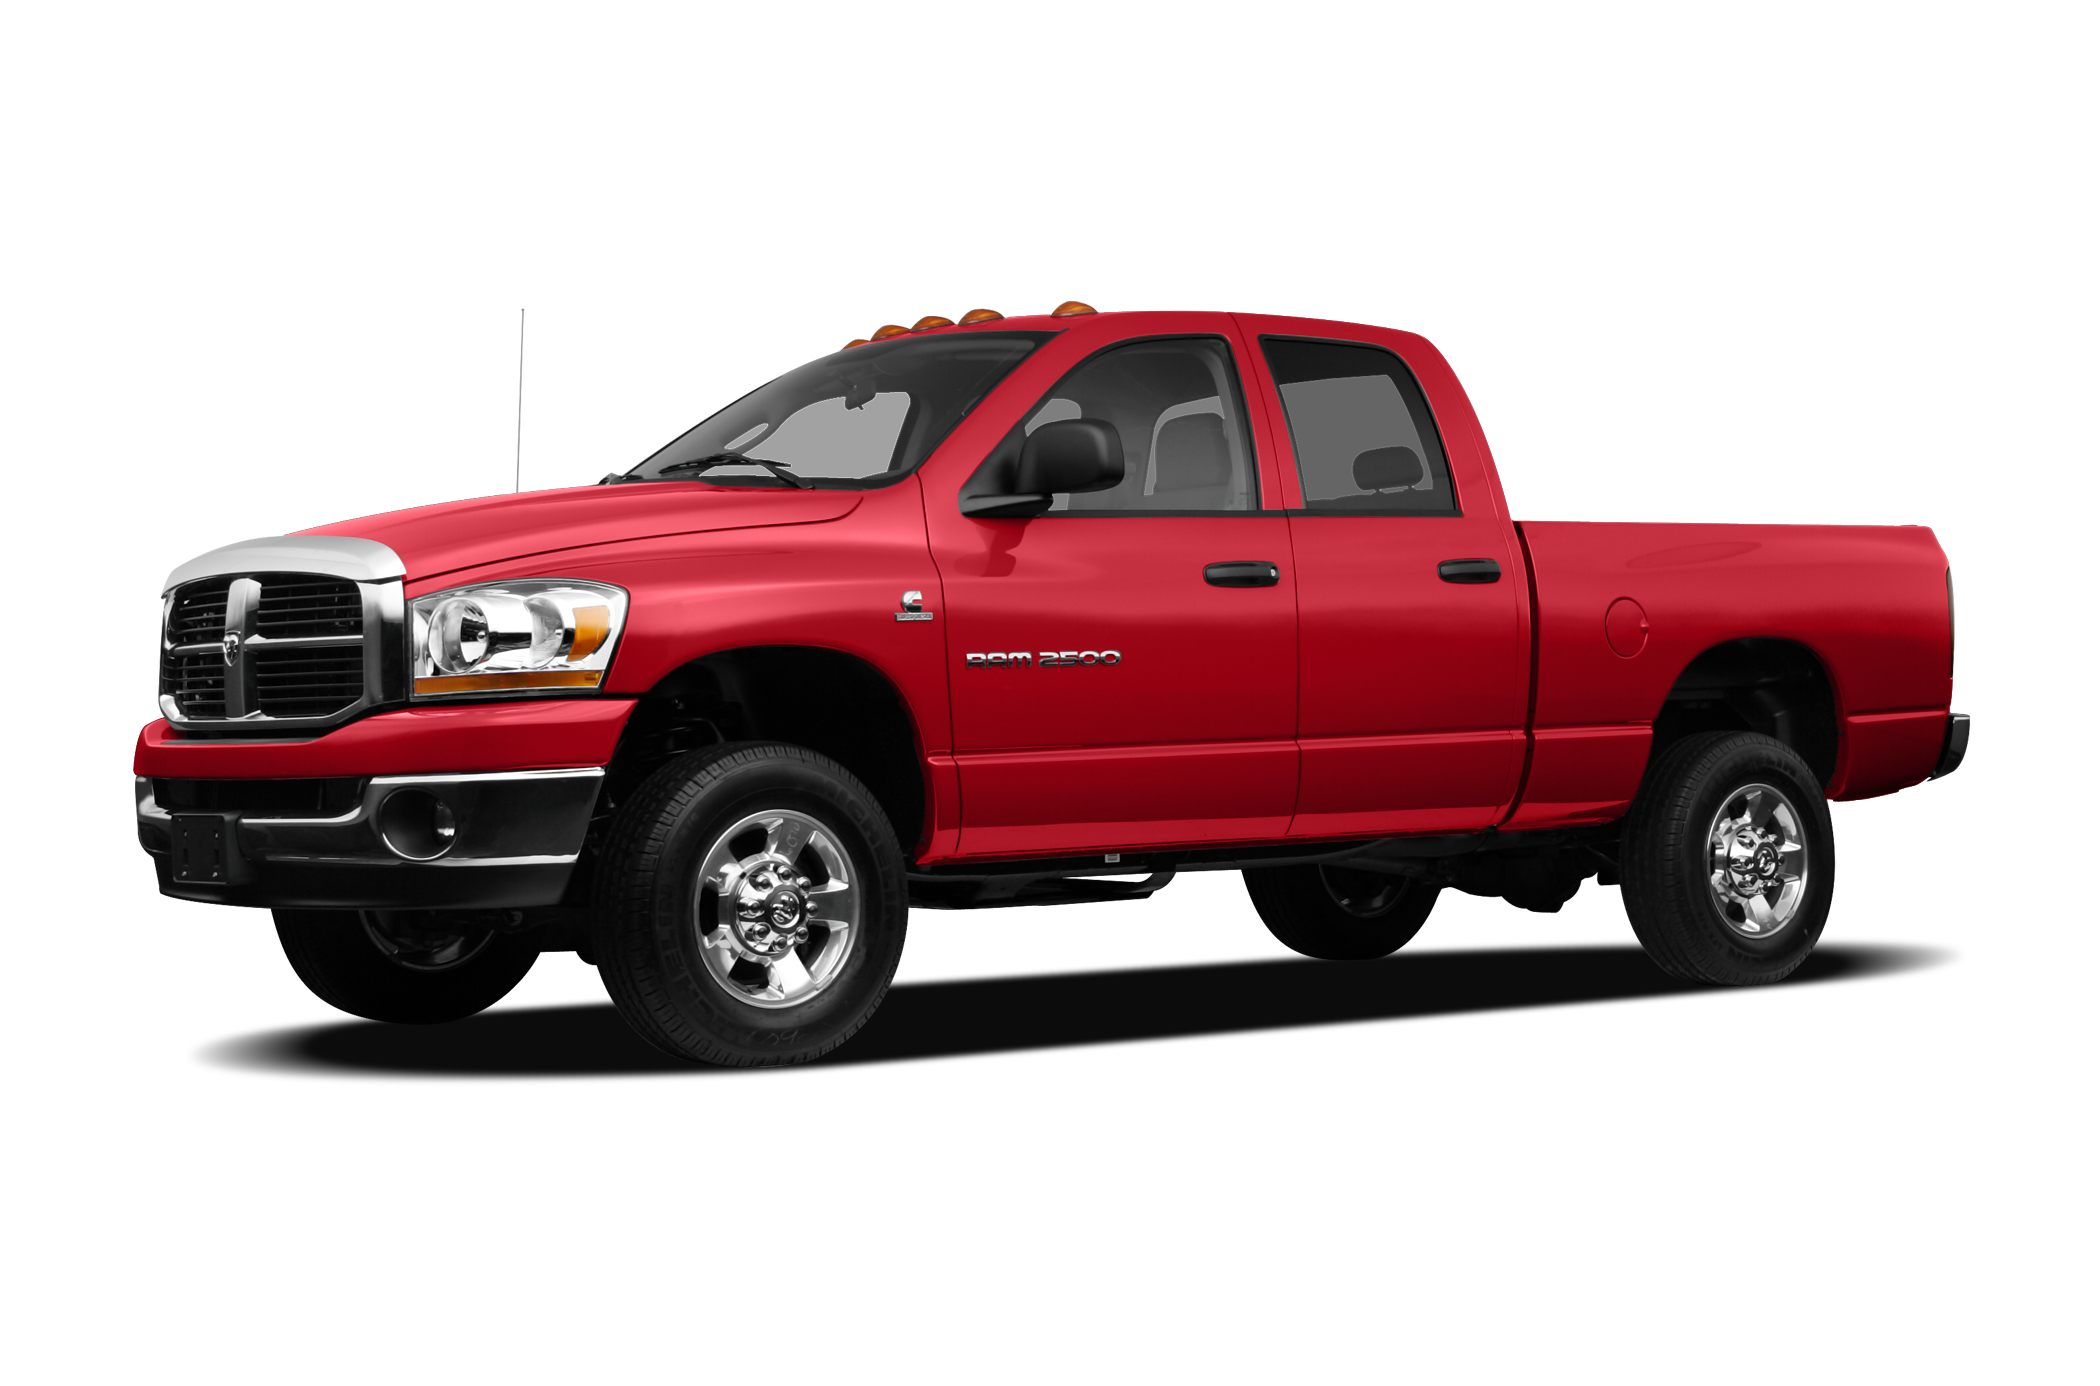 2008 Dodge Ram 2500  Come see this 2008 Dodge Ram 2500  Its transmission and Diesel I6 67L409 e